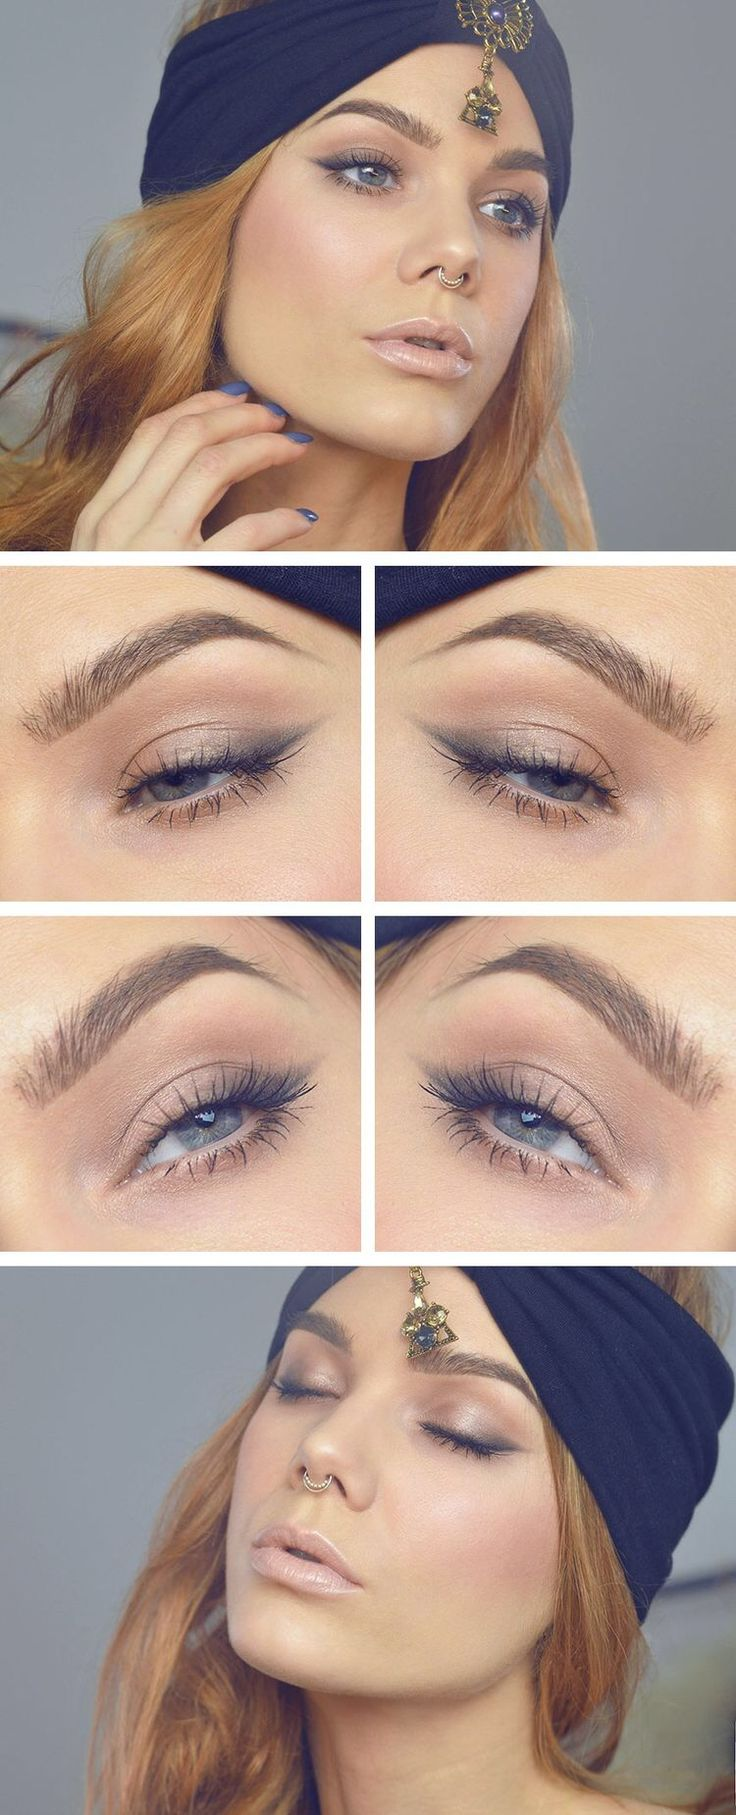 best feminas images on pinterest makeup hairstyles and make up